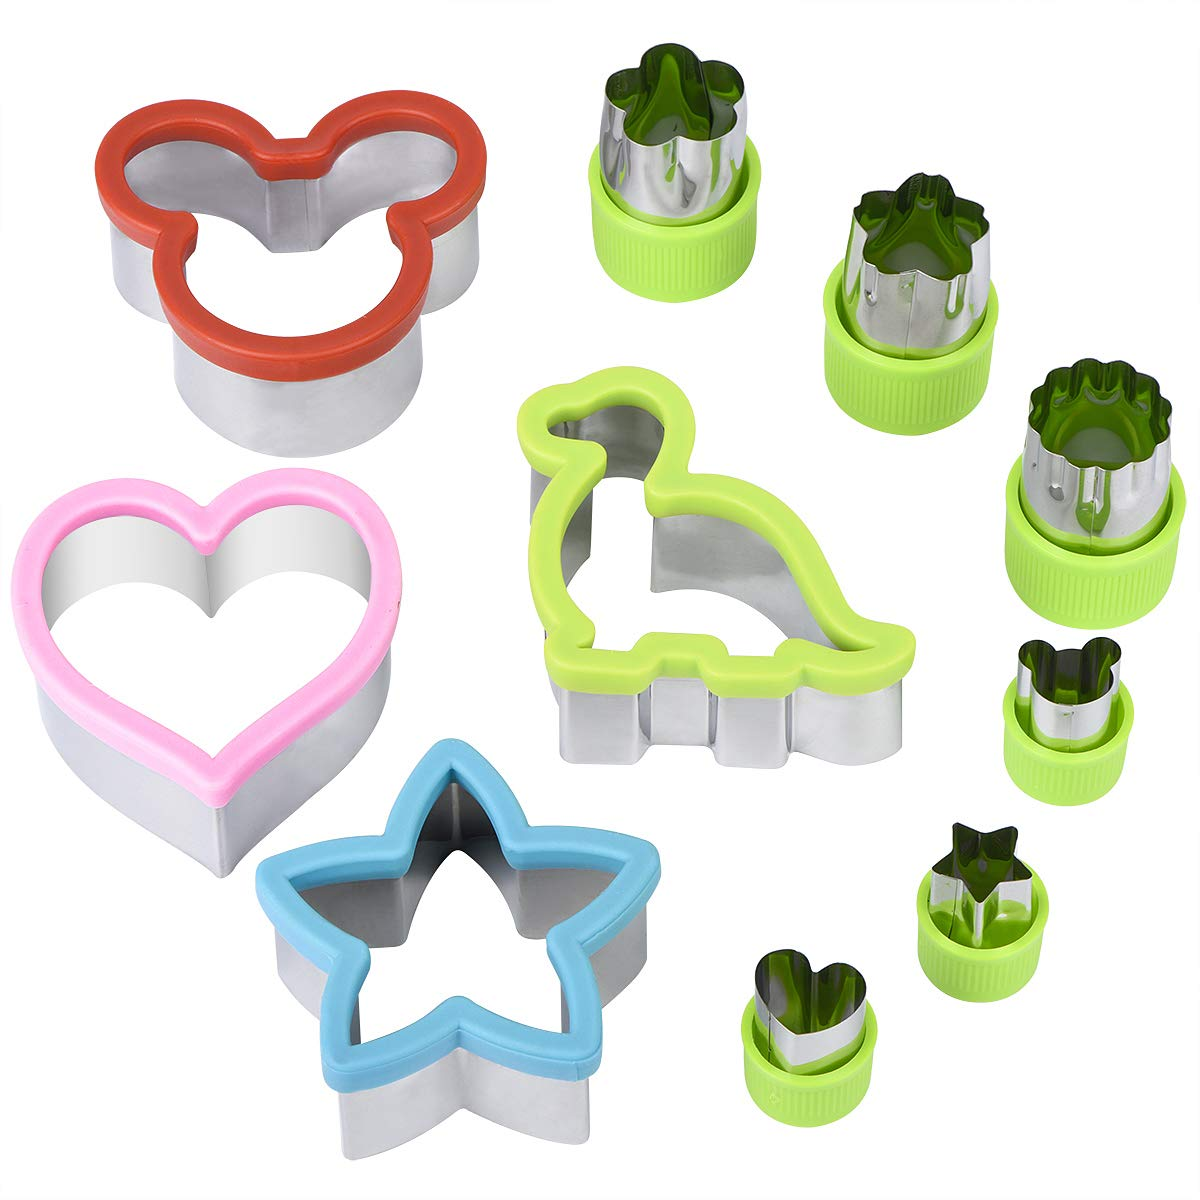 Kids sandwich cookie cutter